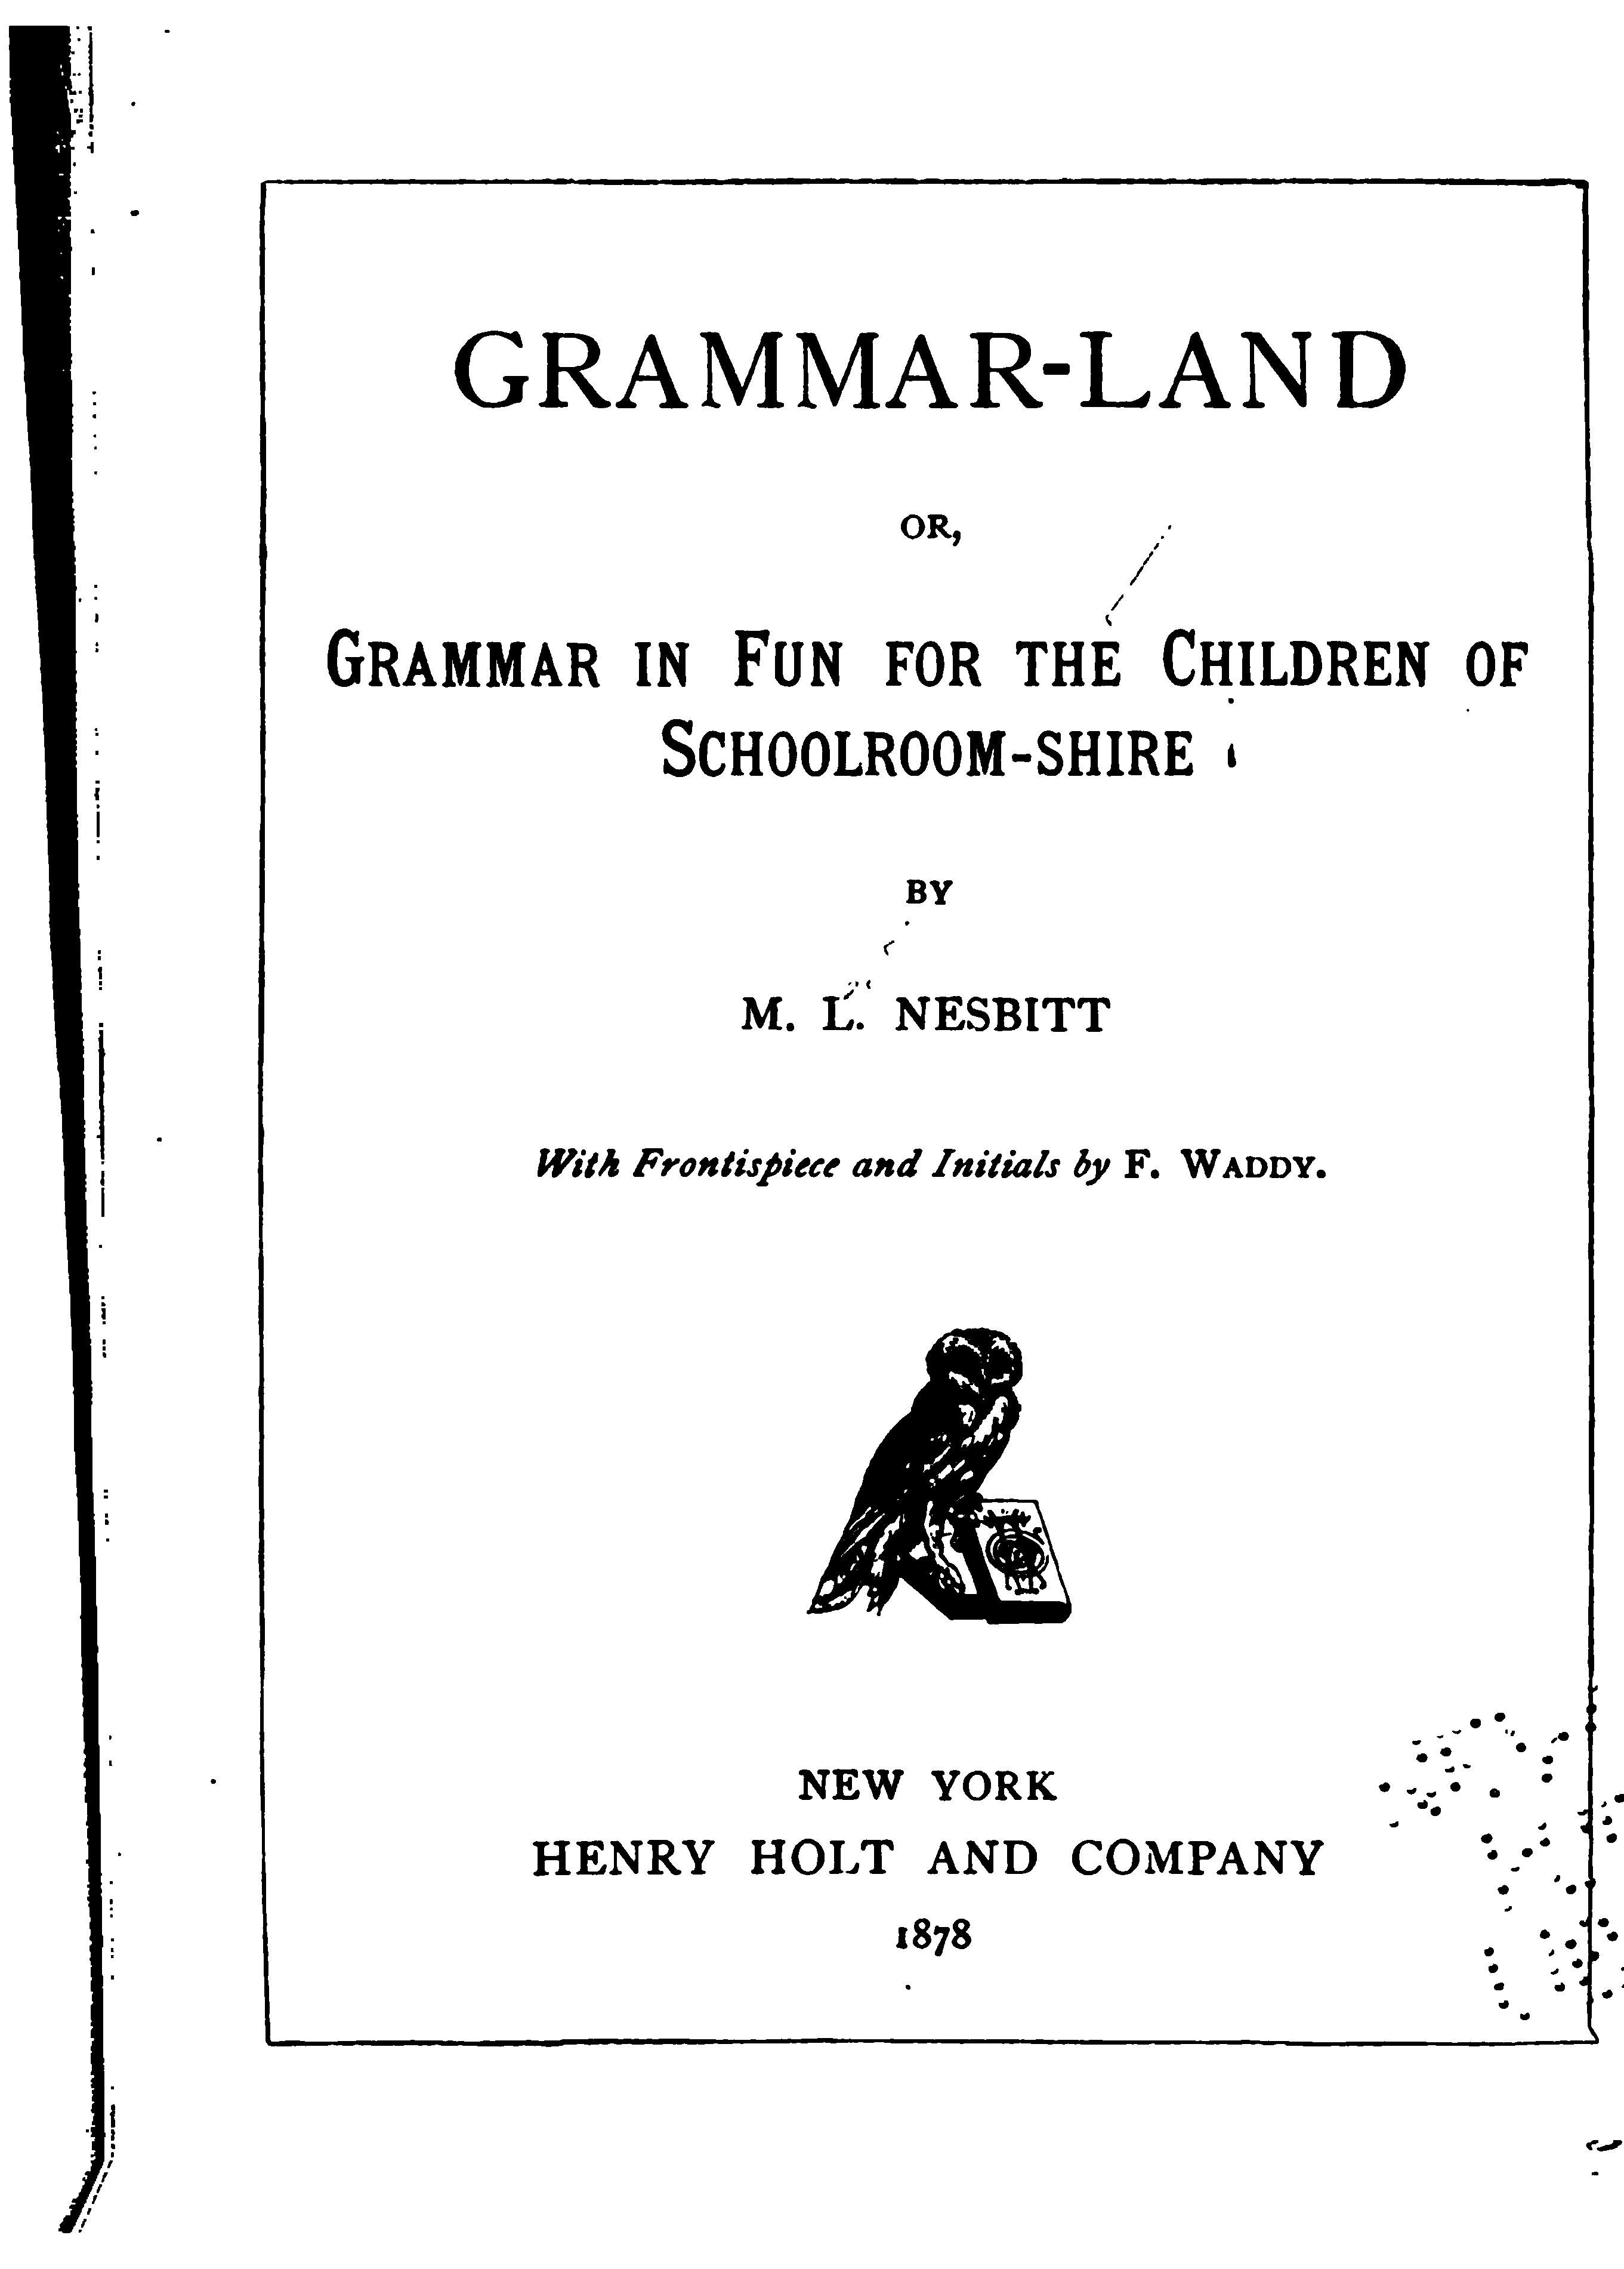 Waldorf 4th Grade Grammar Grammar Land Book Free Online Worksheets Here S Docs